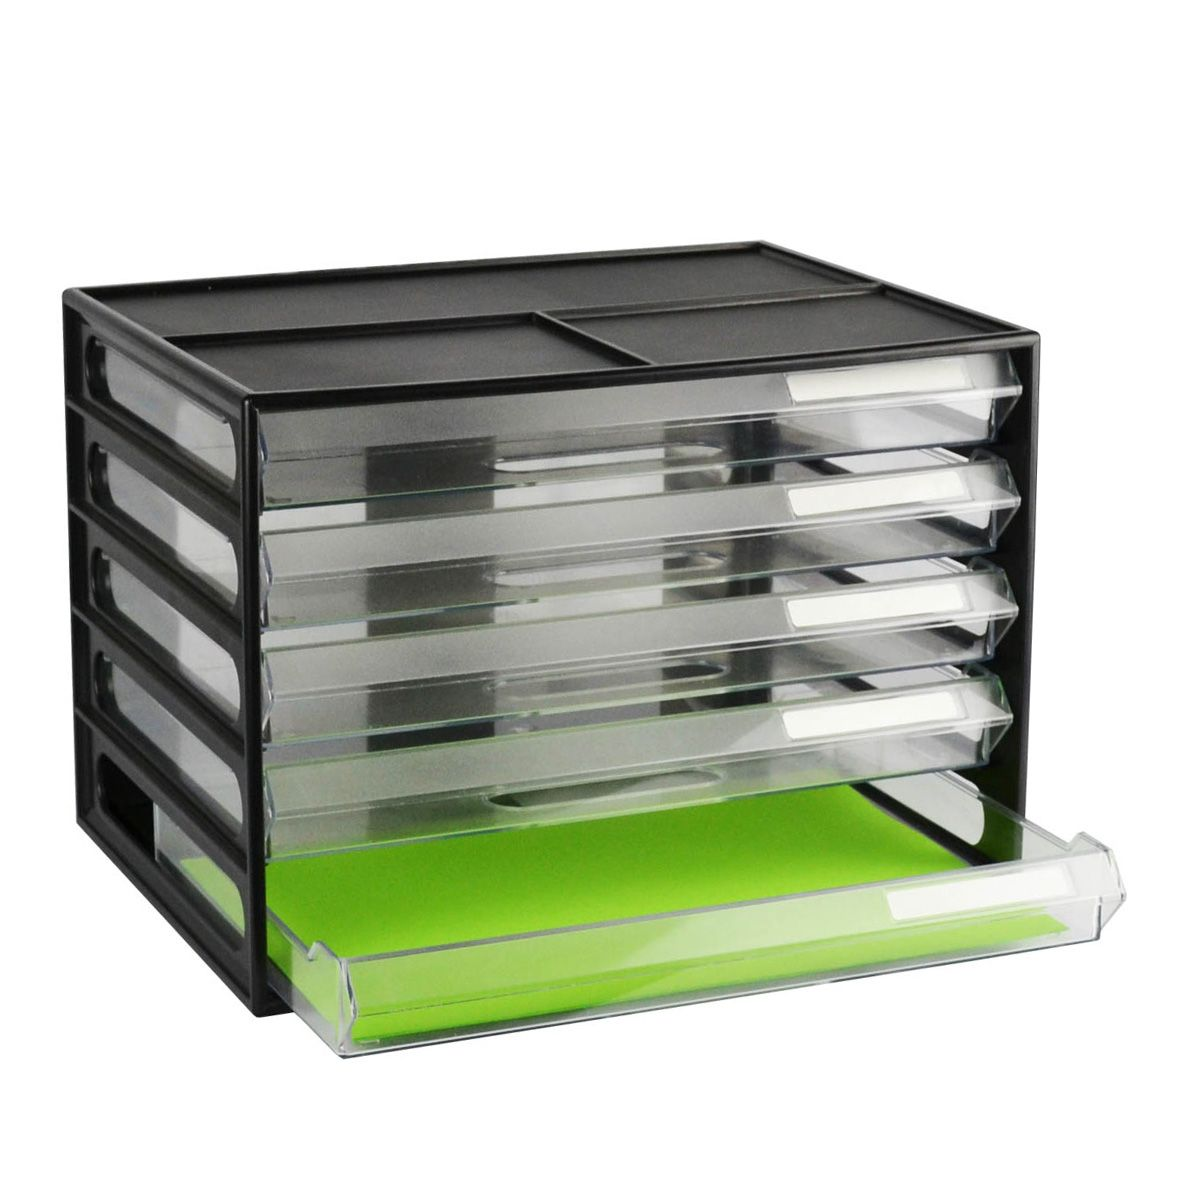 greenR A4 Document Cabinet - Recycled Black